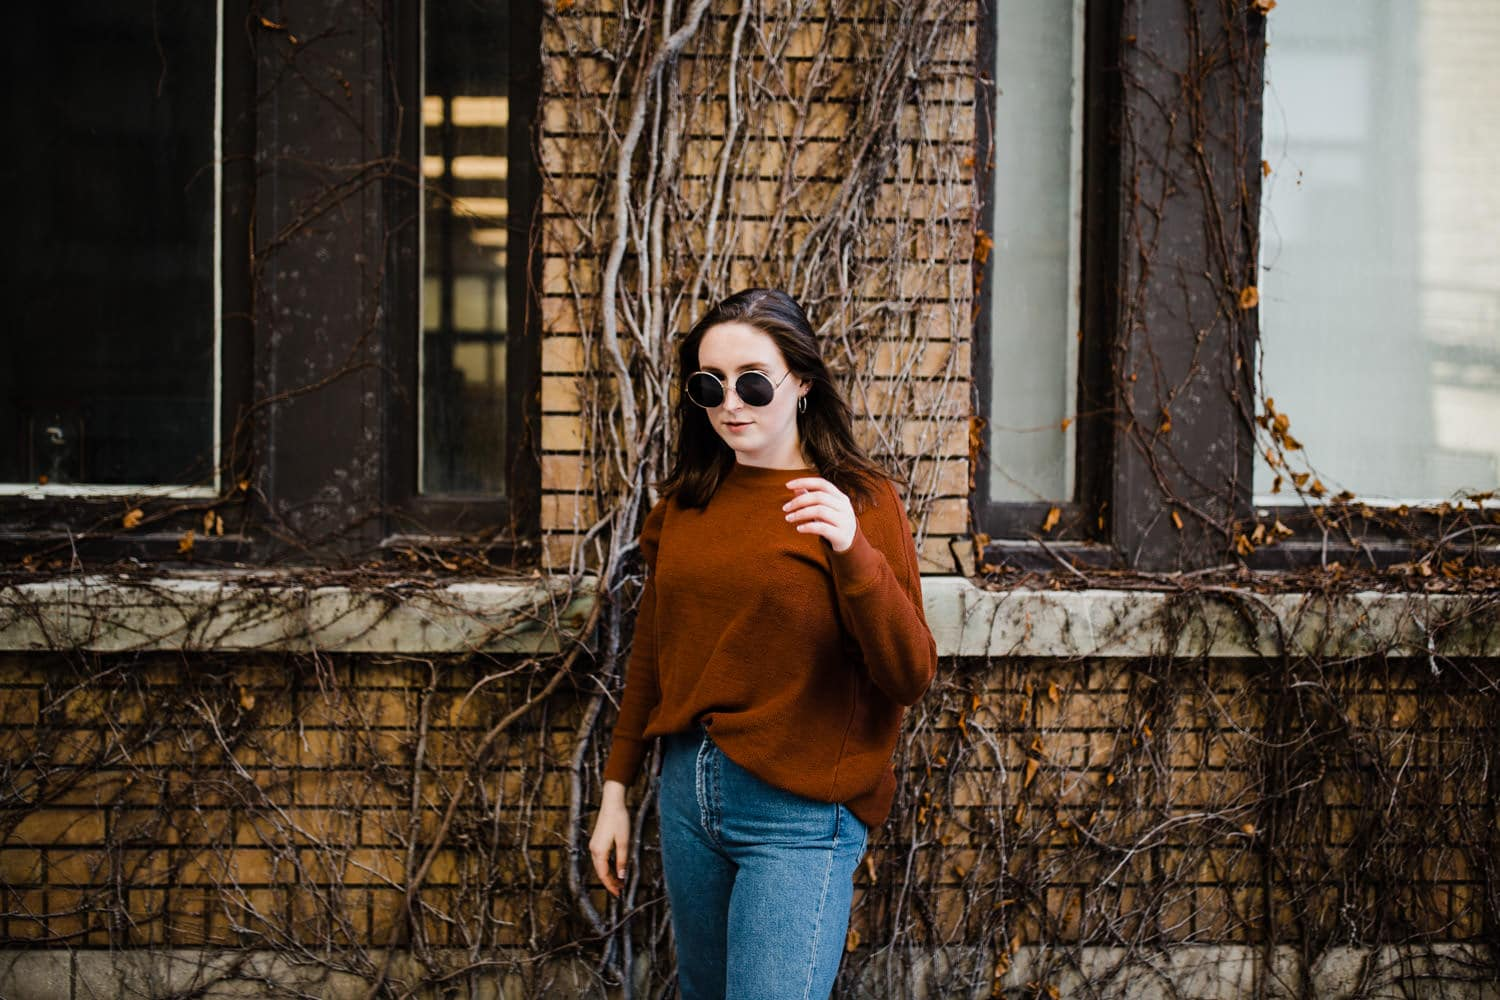 woman stands in front of vine covered wall wearing sunglasses